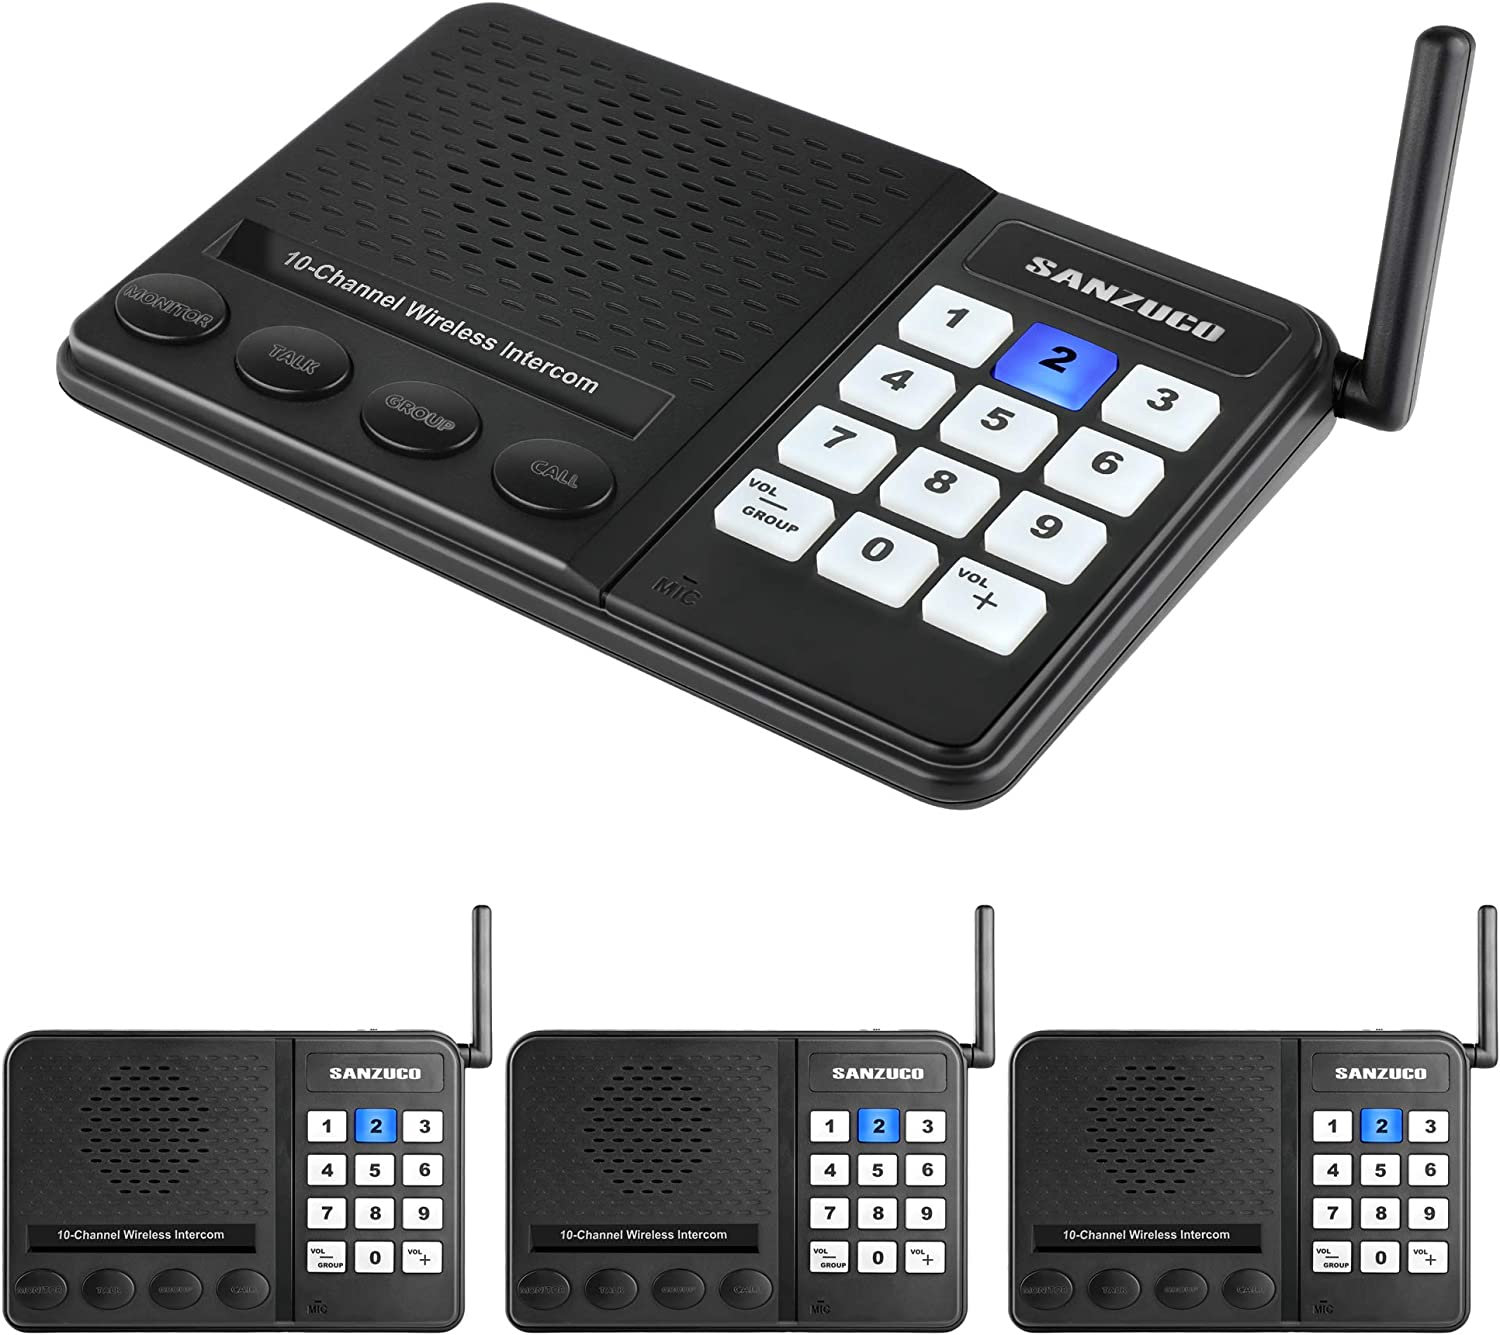 Wireless Intercom System Sanzuco Intercoms Wireless for Home, 10 Channel Wireless Intercom System for Home School Business Office Room to Room Intercom, Home Communication System Pack of 4 Black